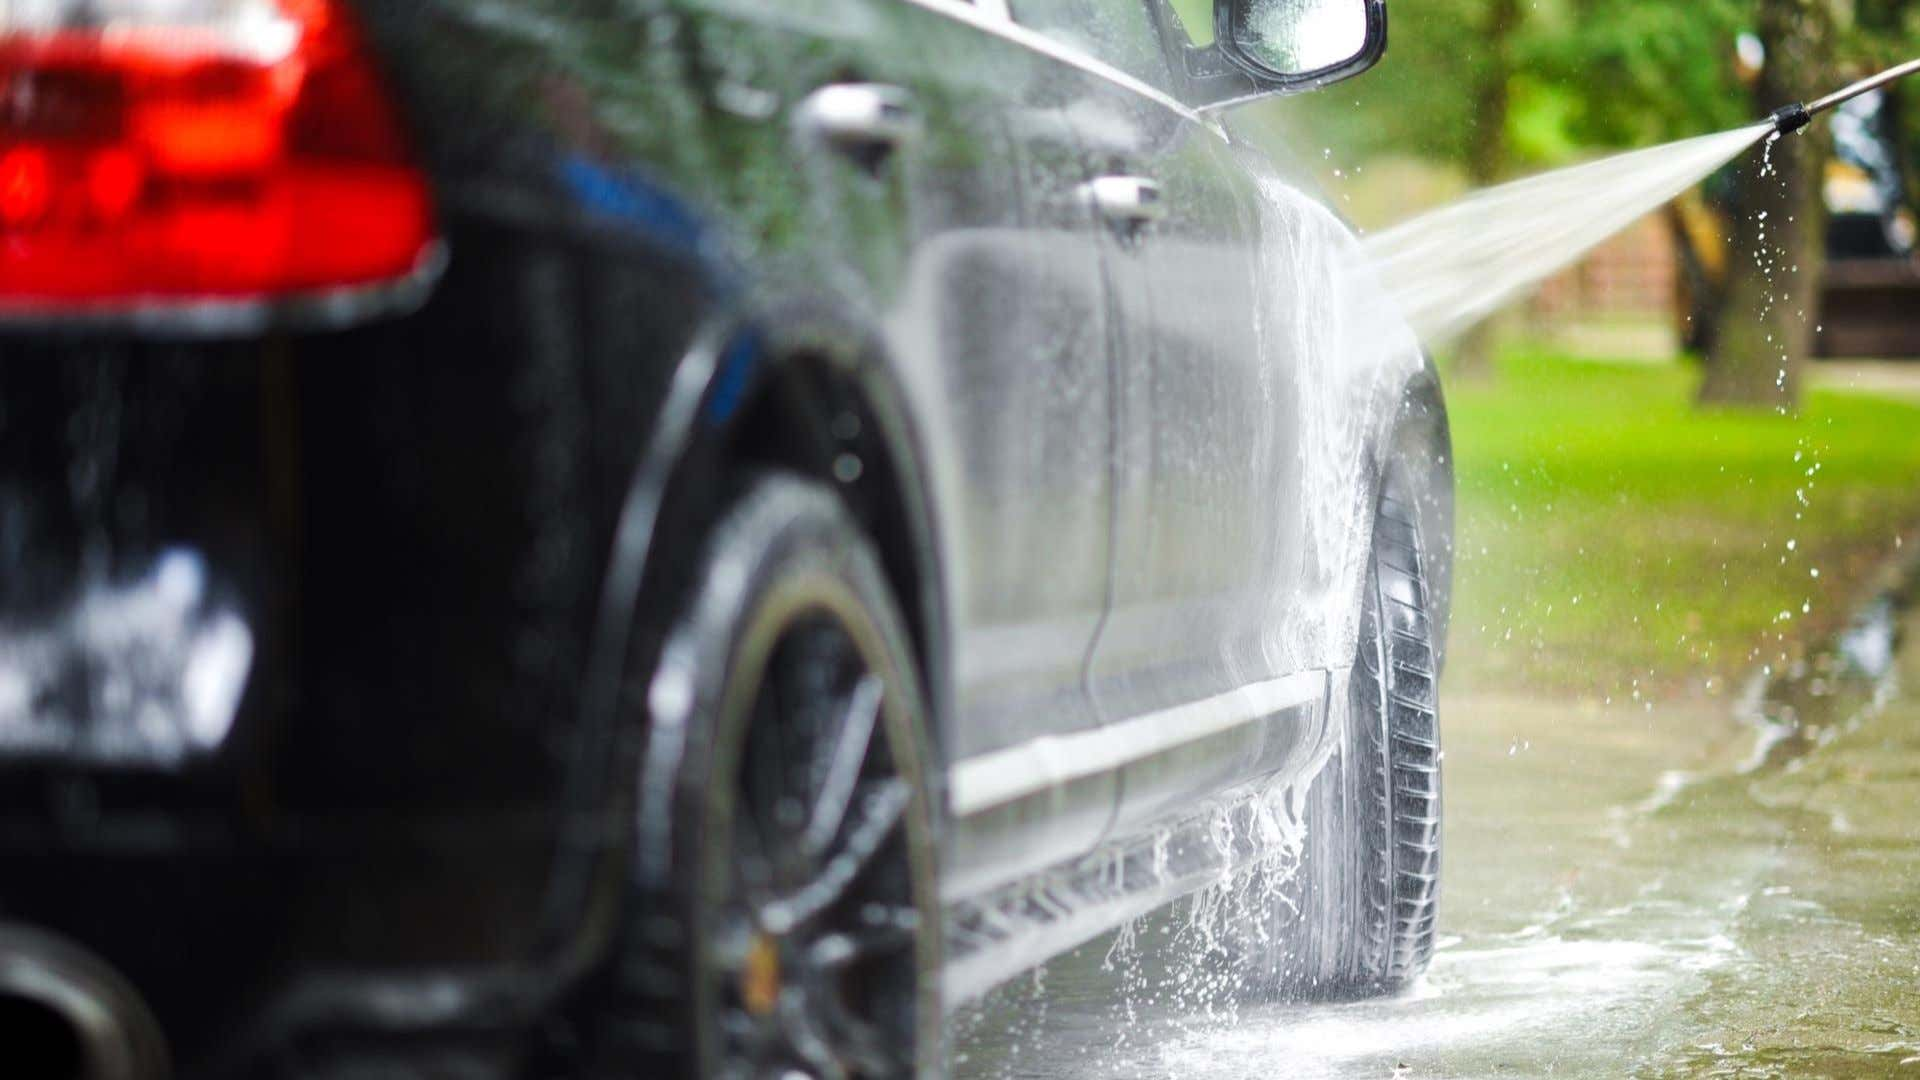 Wash your car only after the paint dries.